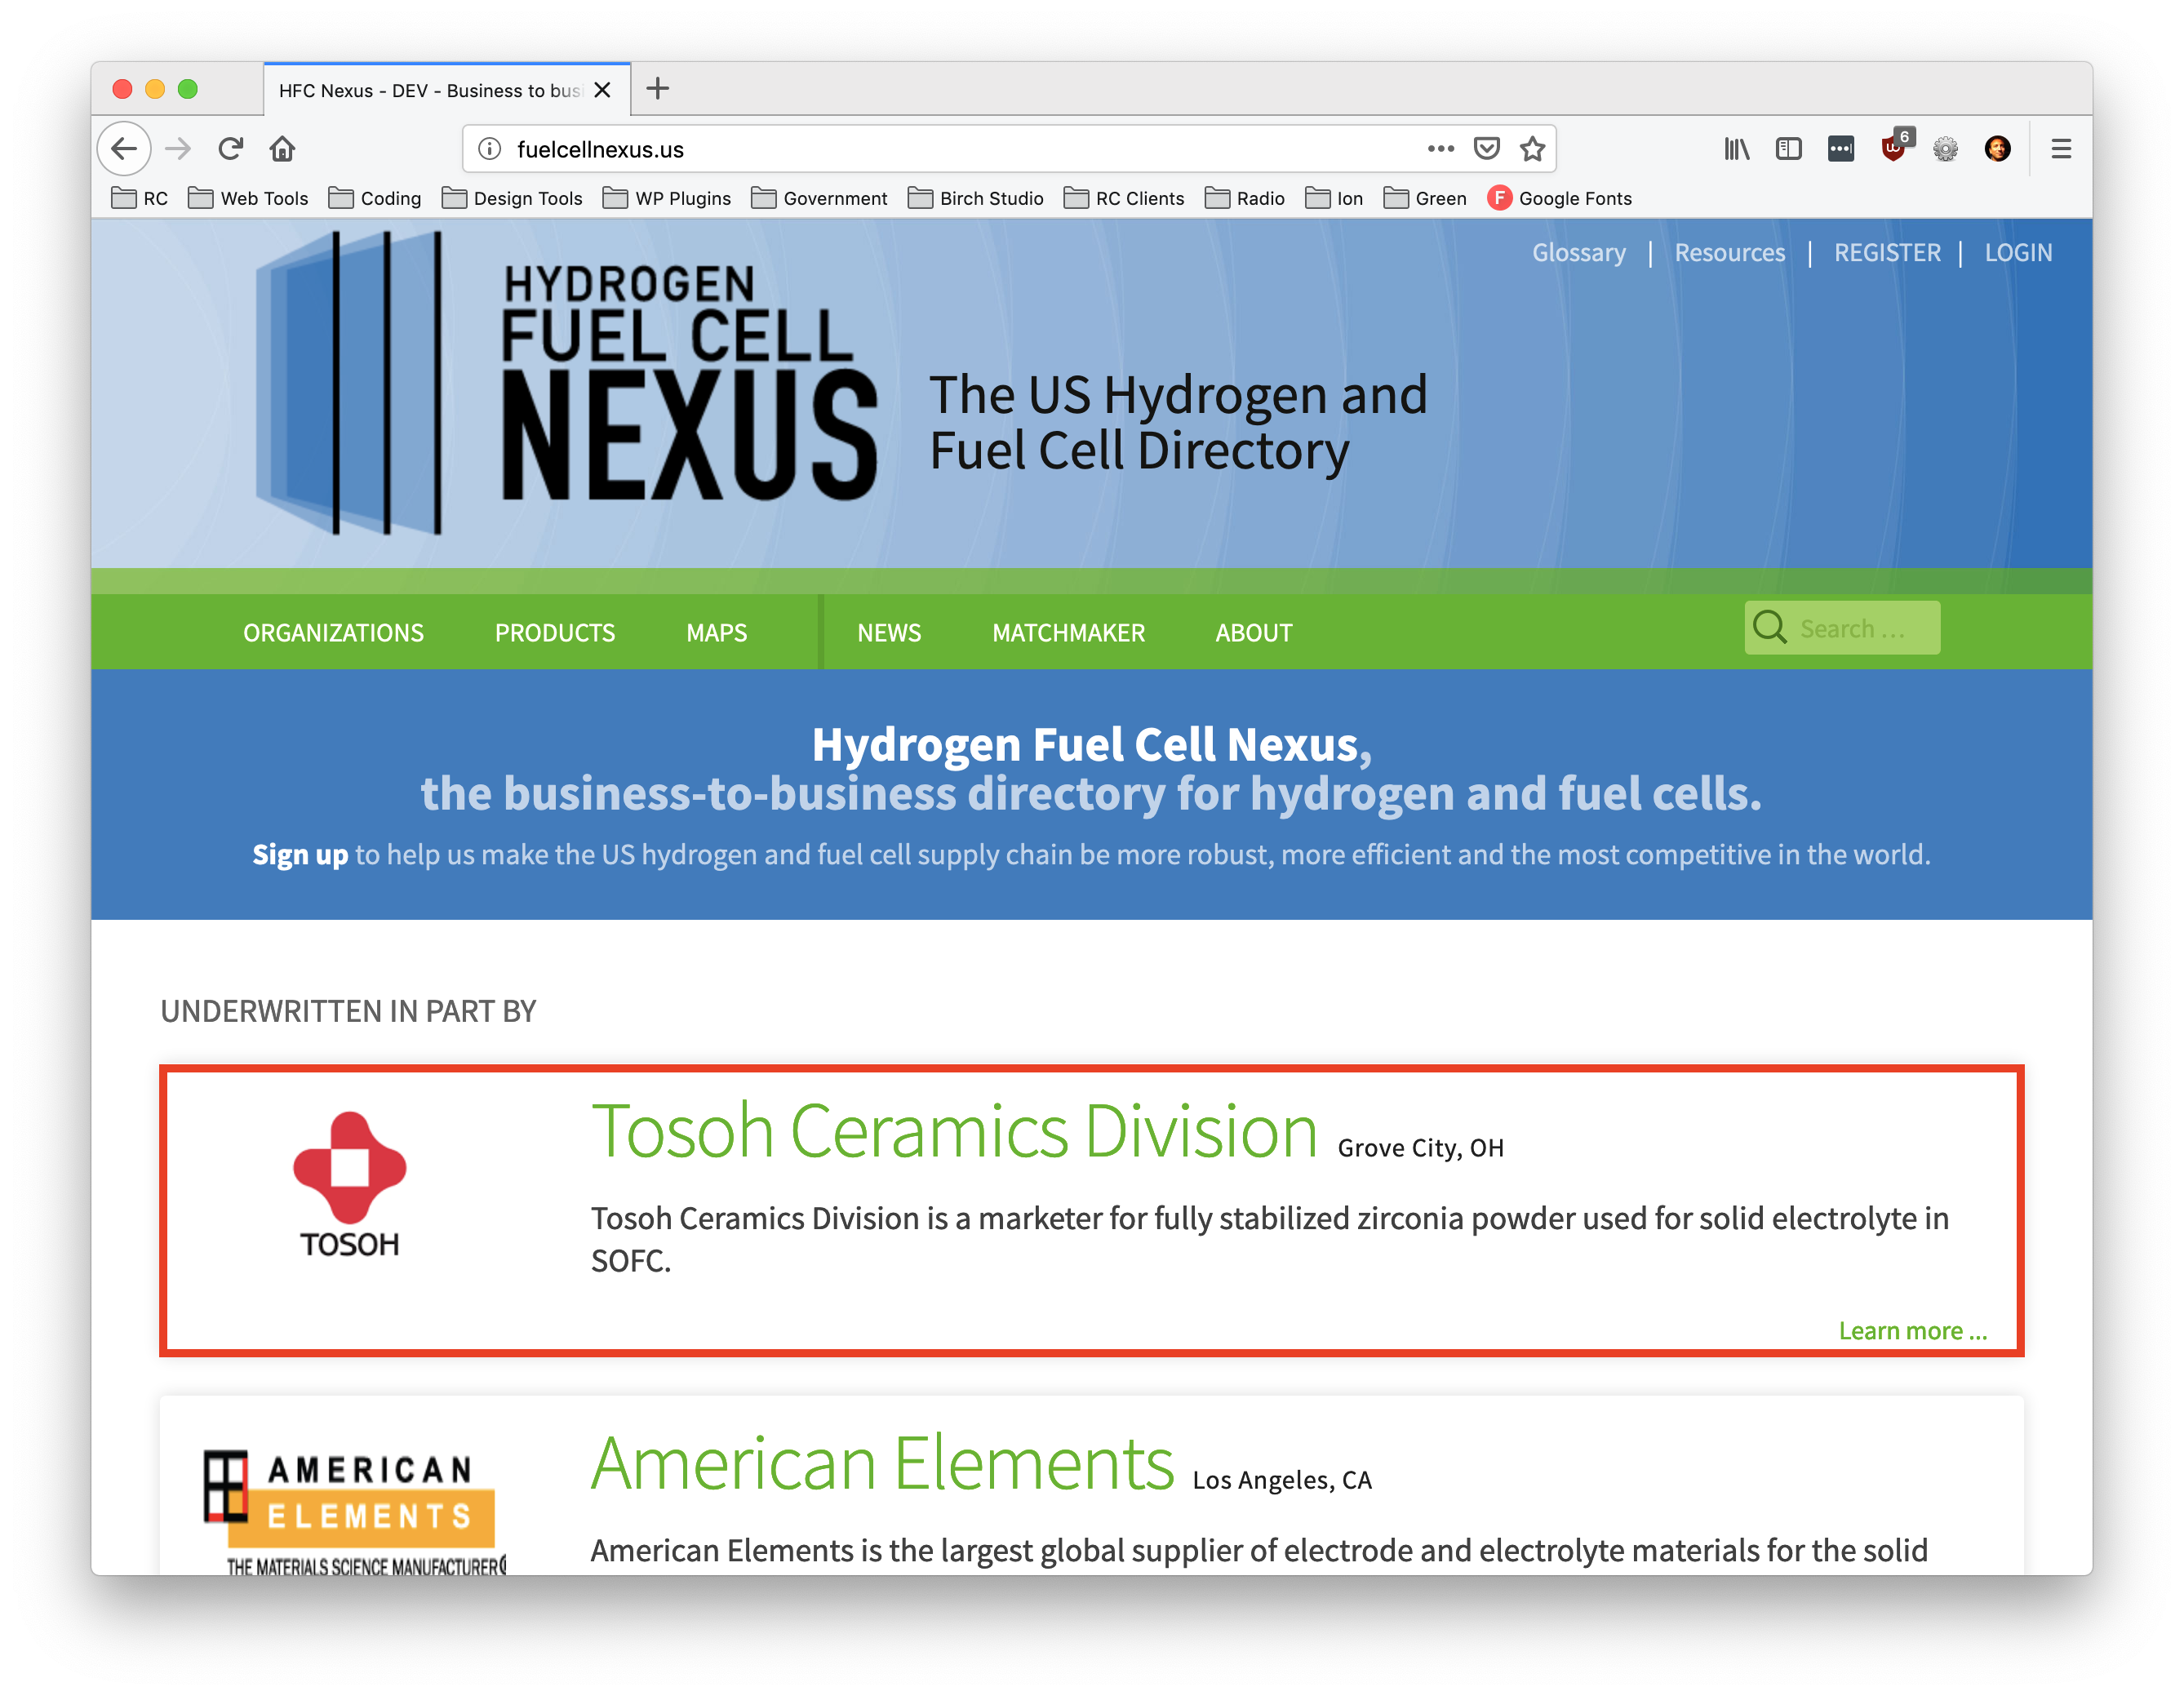 Premium Listings and Advertising – Hydrogen Fuel Cell Nexus